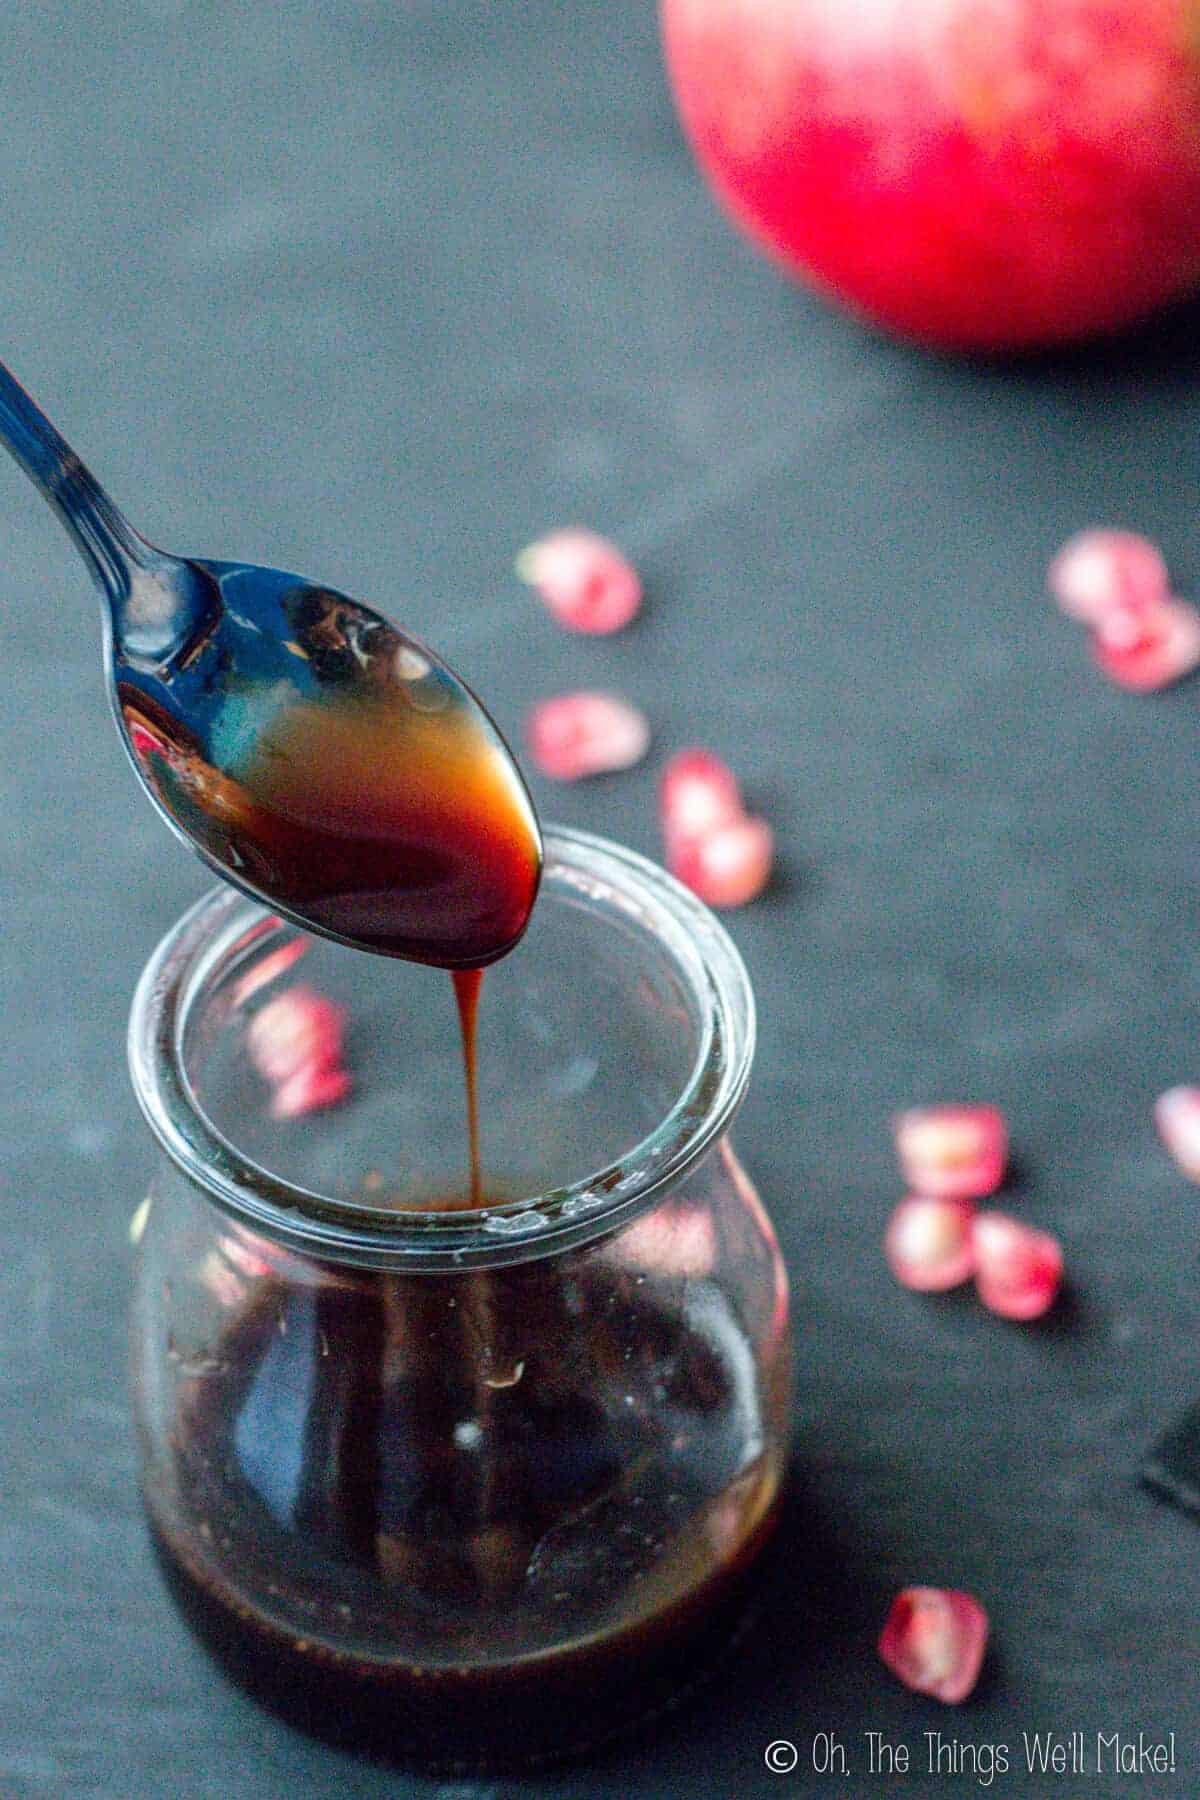 Homemade grenadine being spooned up and drizzled down into a small glass jar below.